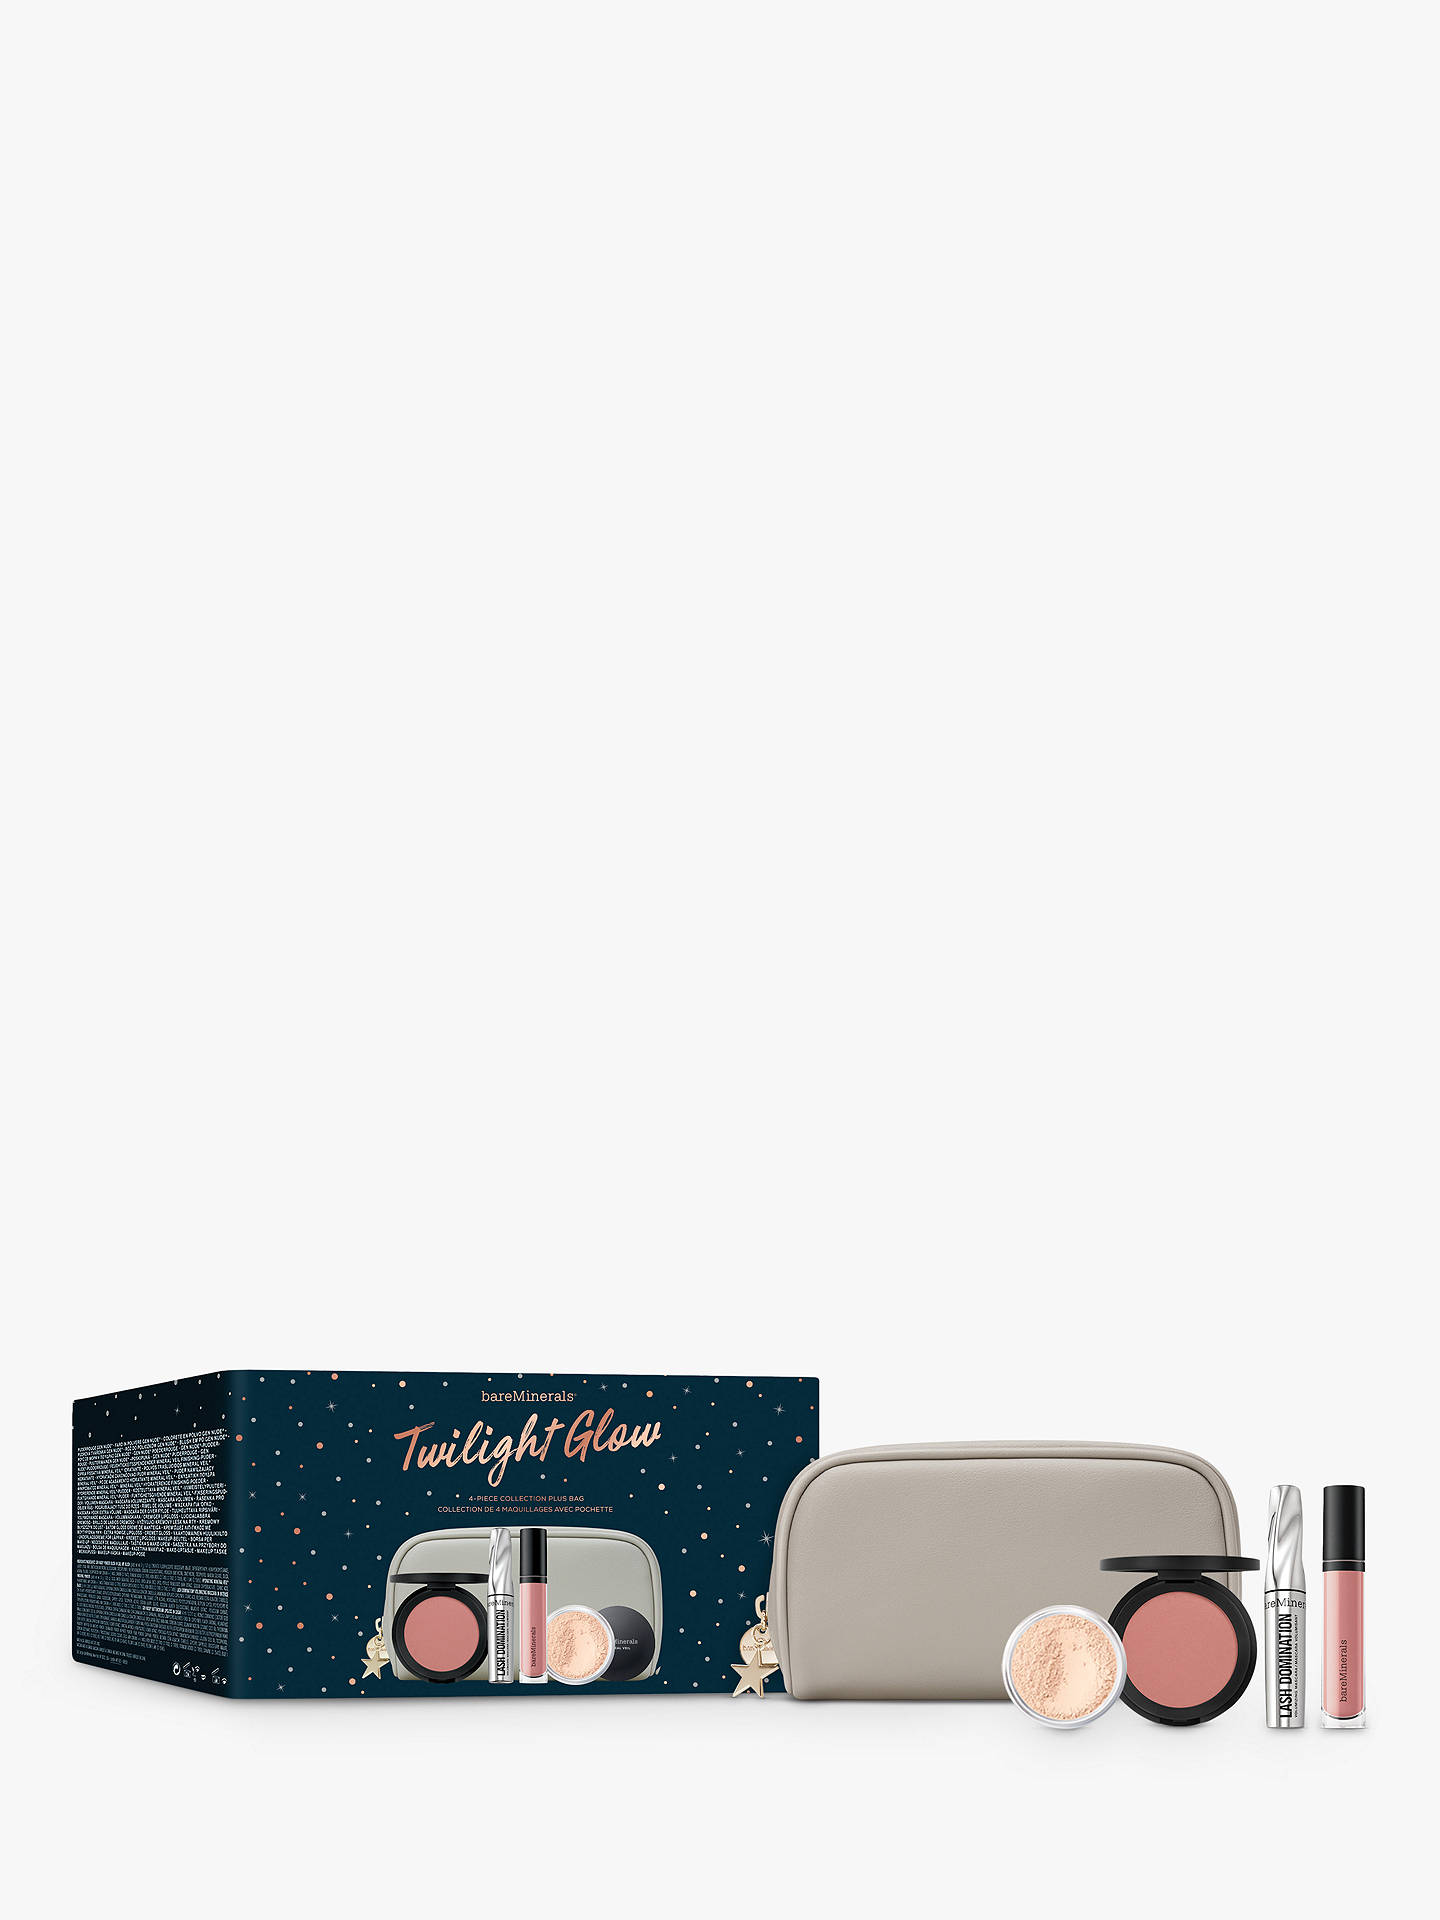 Buy bareMinerals Twilight Glow Makeup Gift Set Online at johnlewis.com